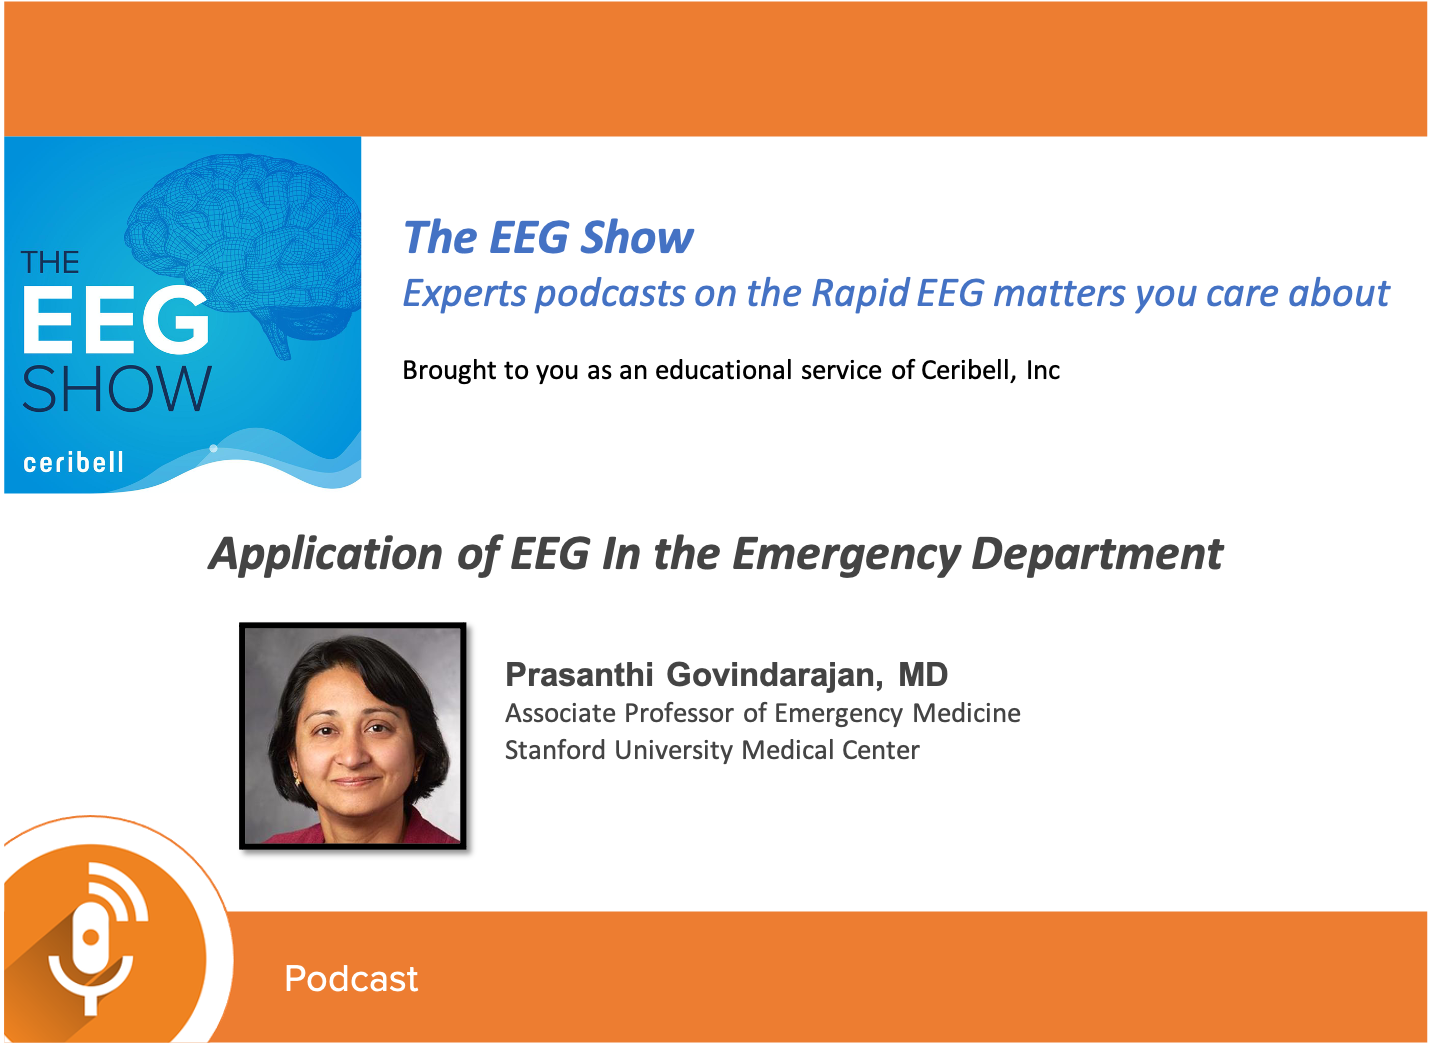 Dr. Prasanthi Govindarajan discusses the use and benefits of access to rapid EEG in the emergency department